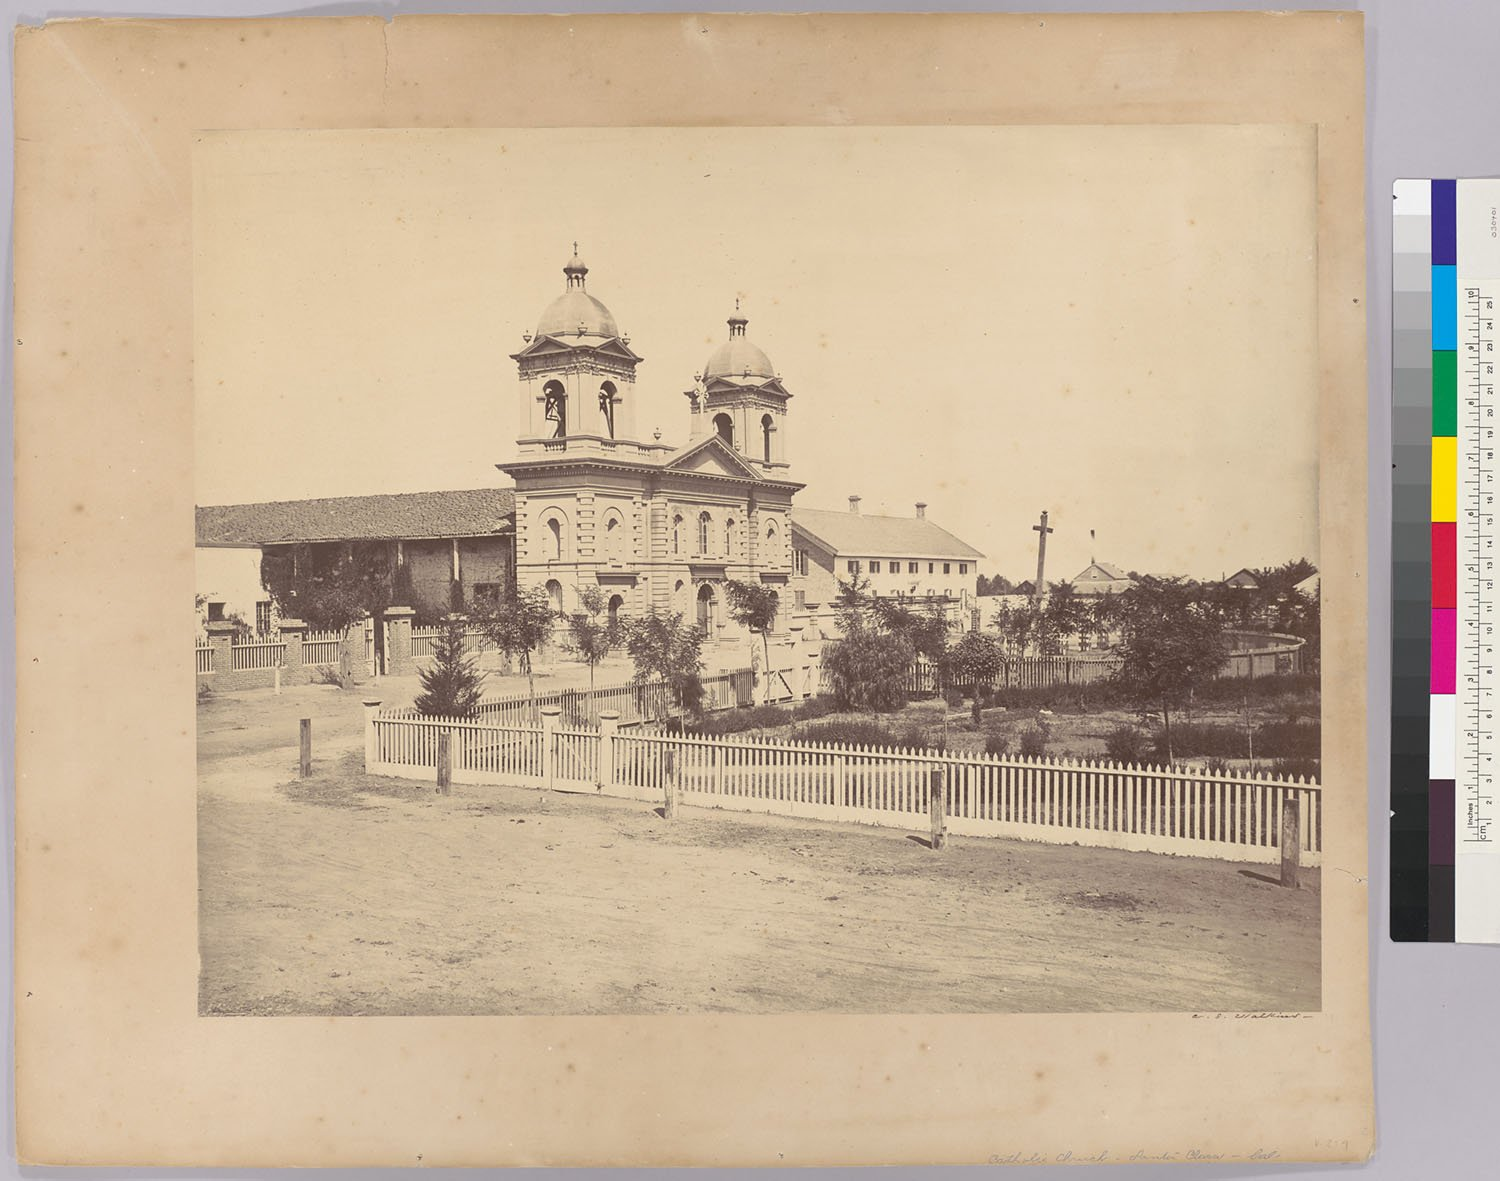 The expanded college in 1863, in a photograph from the famous Carleton E. Watkins (Online Archive of California).